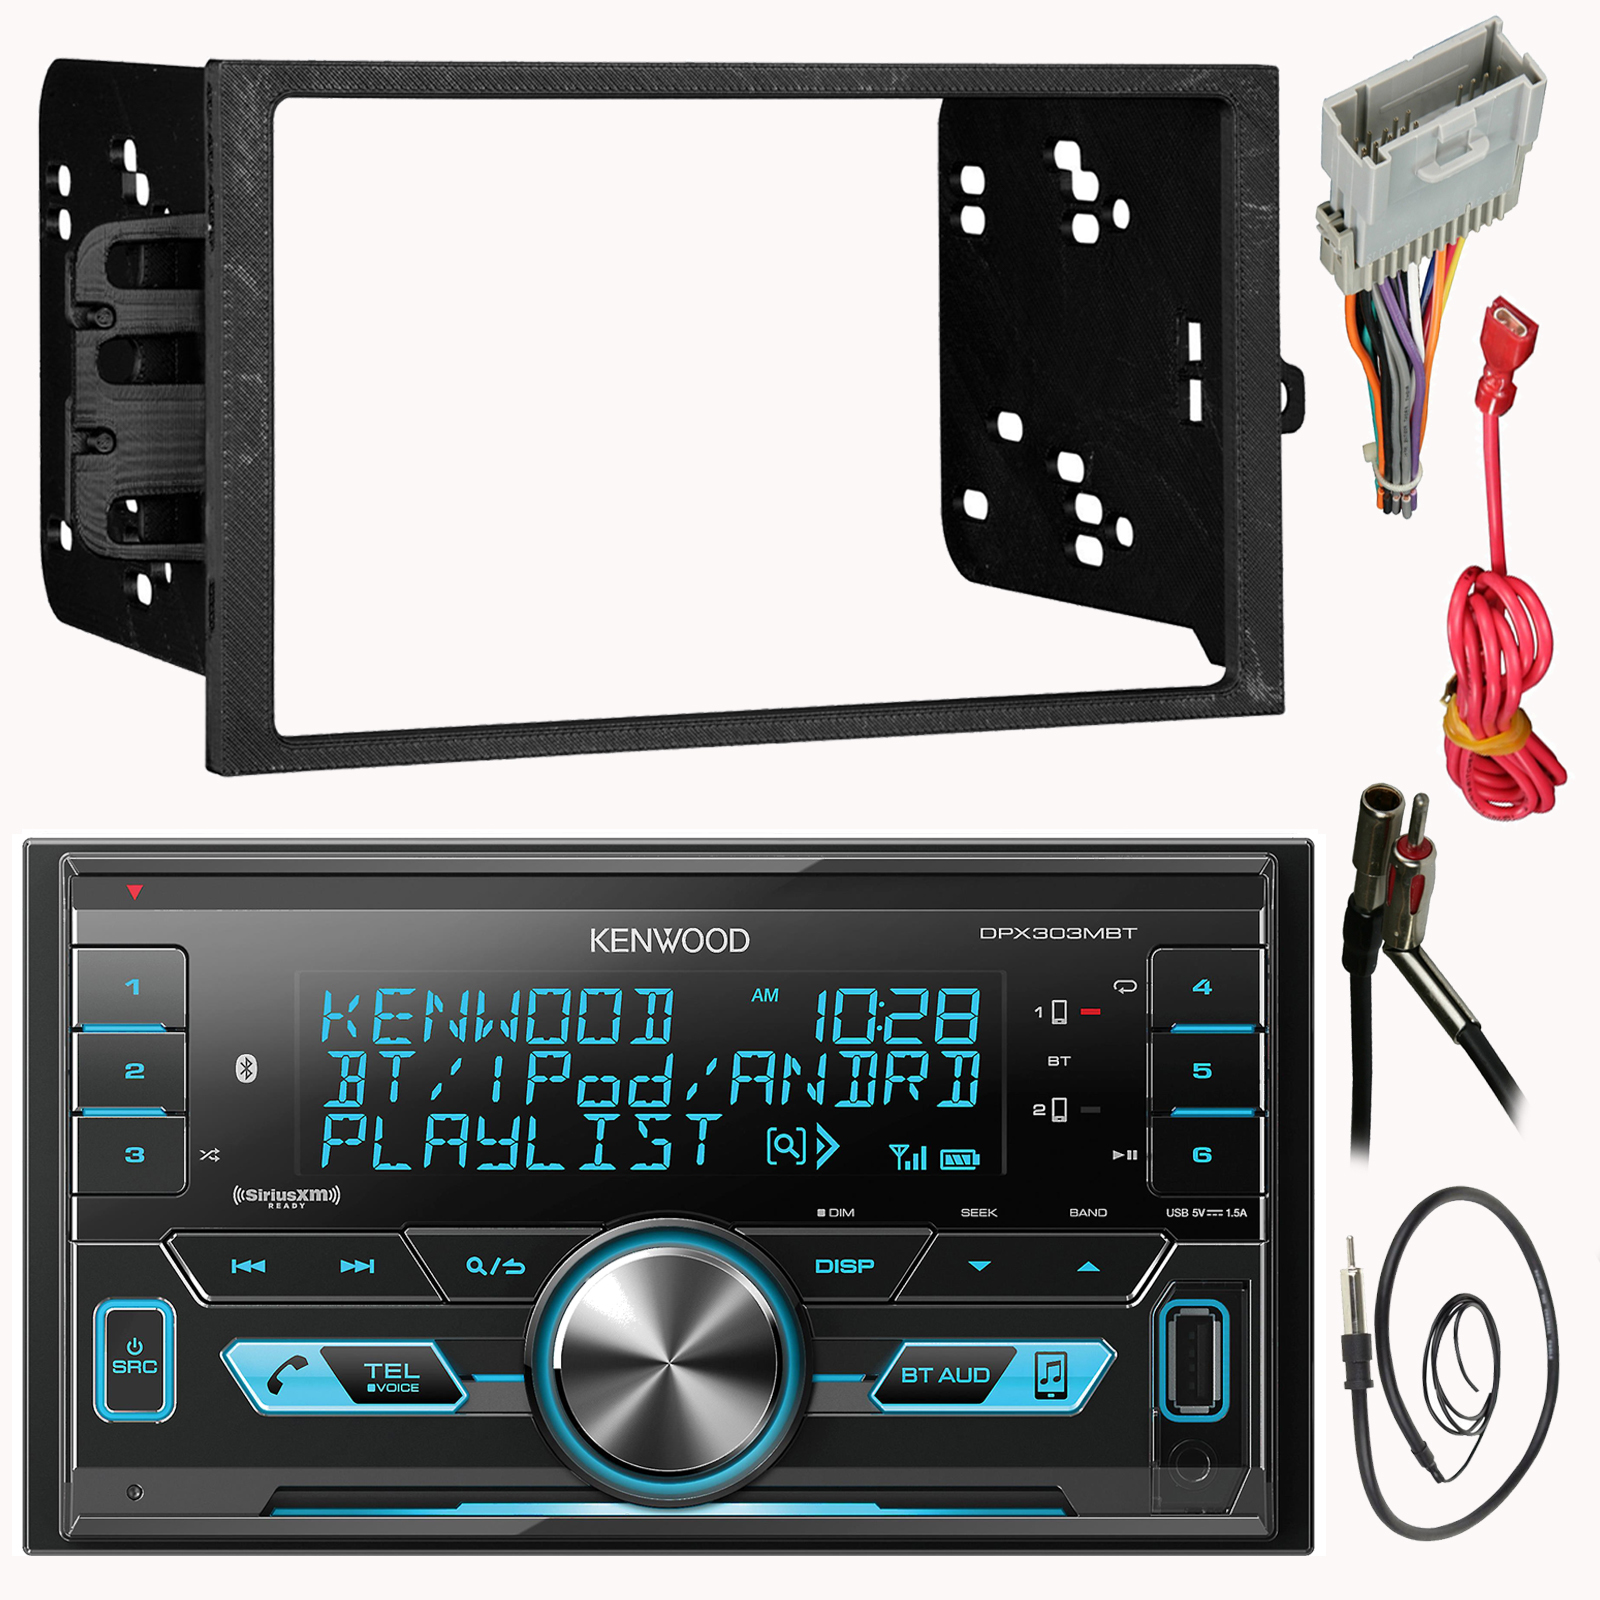 Kenwood Double Din Stereo Wiring Diagram Electrical Wire Harness For Ouku Gm Trusted Schematic Diagrams U2022 Surround Sound